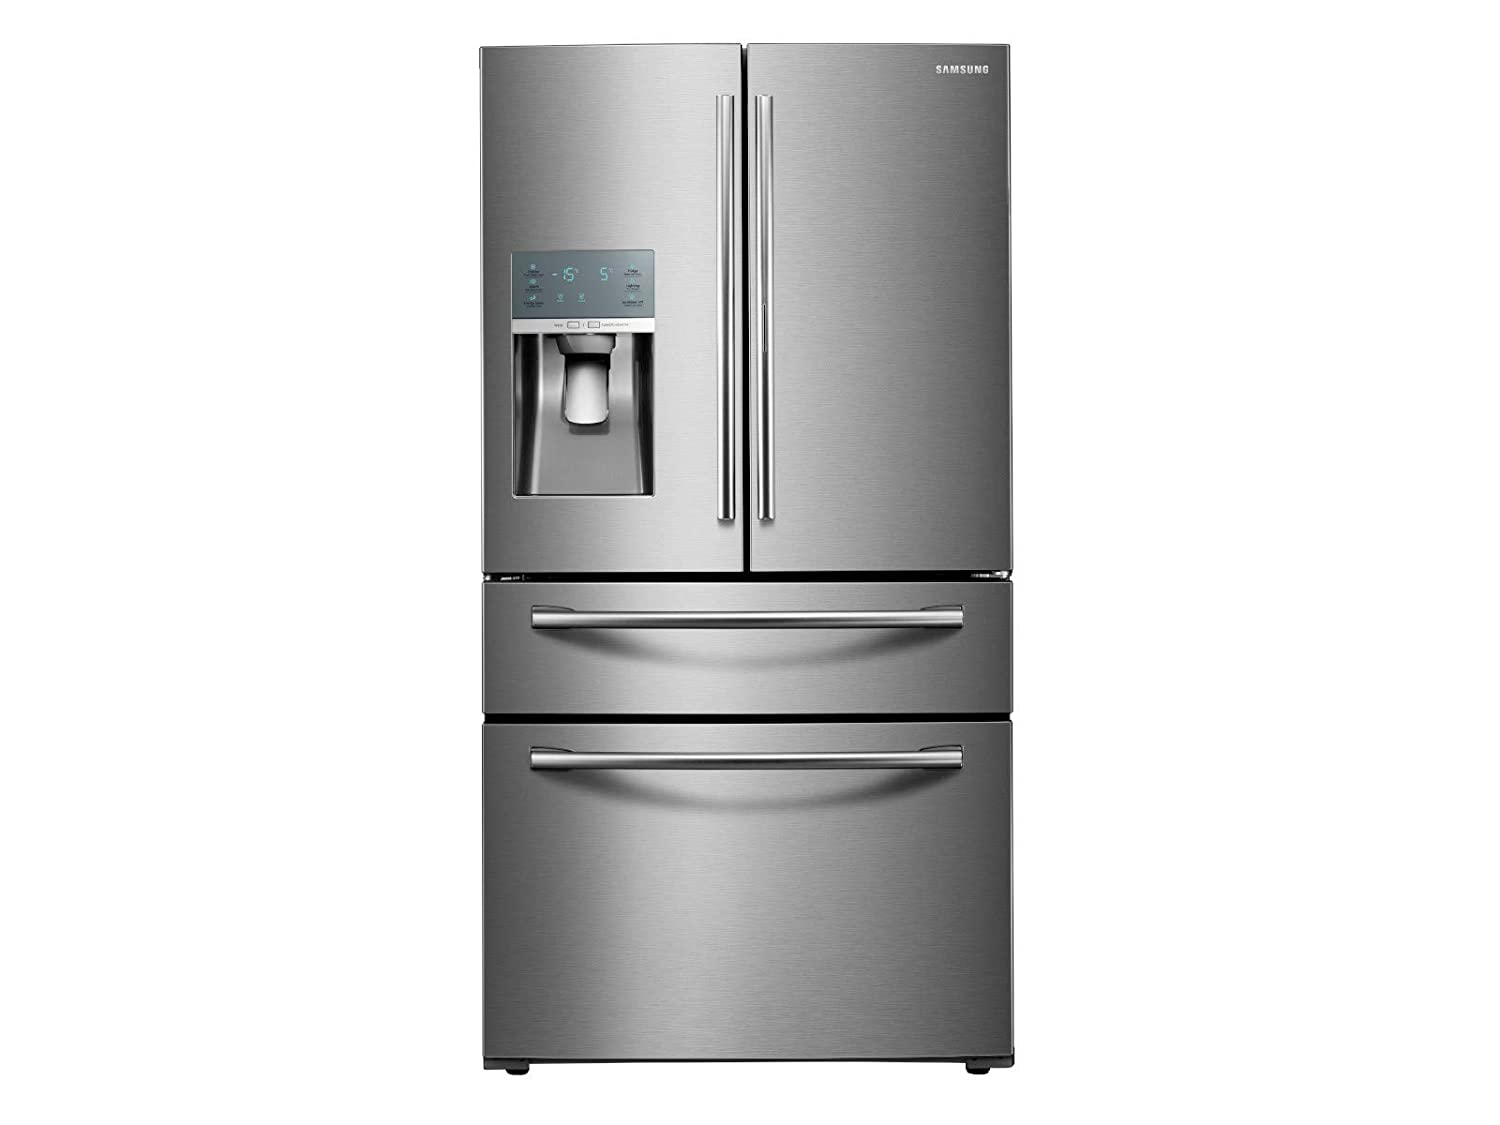 """Samsung Appliance RF28JBEDBSR 36"""" Energy Star Rated Food Showcase French Door Refrigerator in Stainless Steel"""